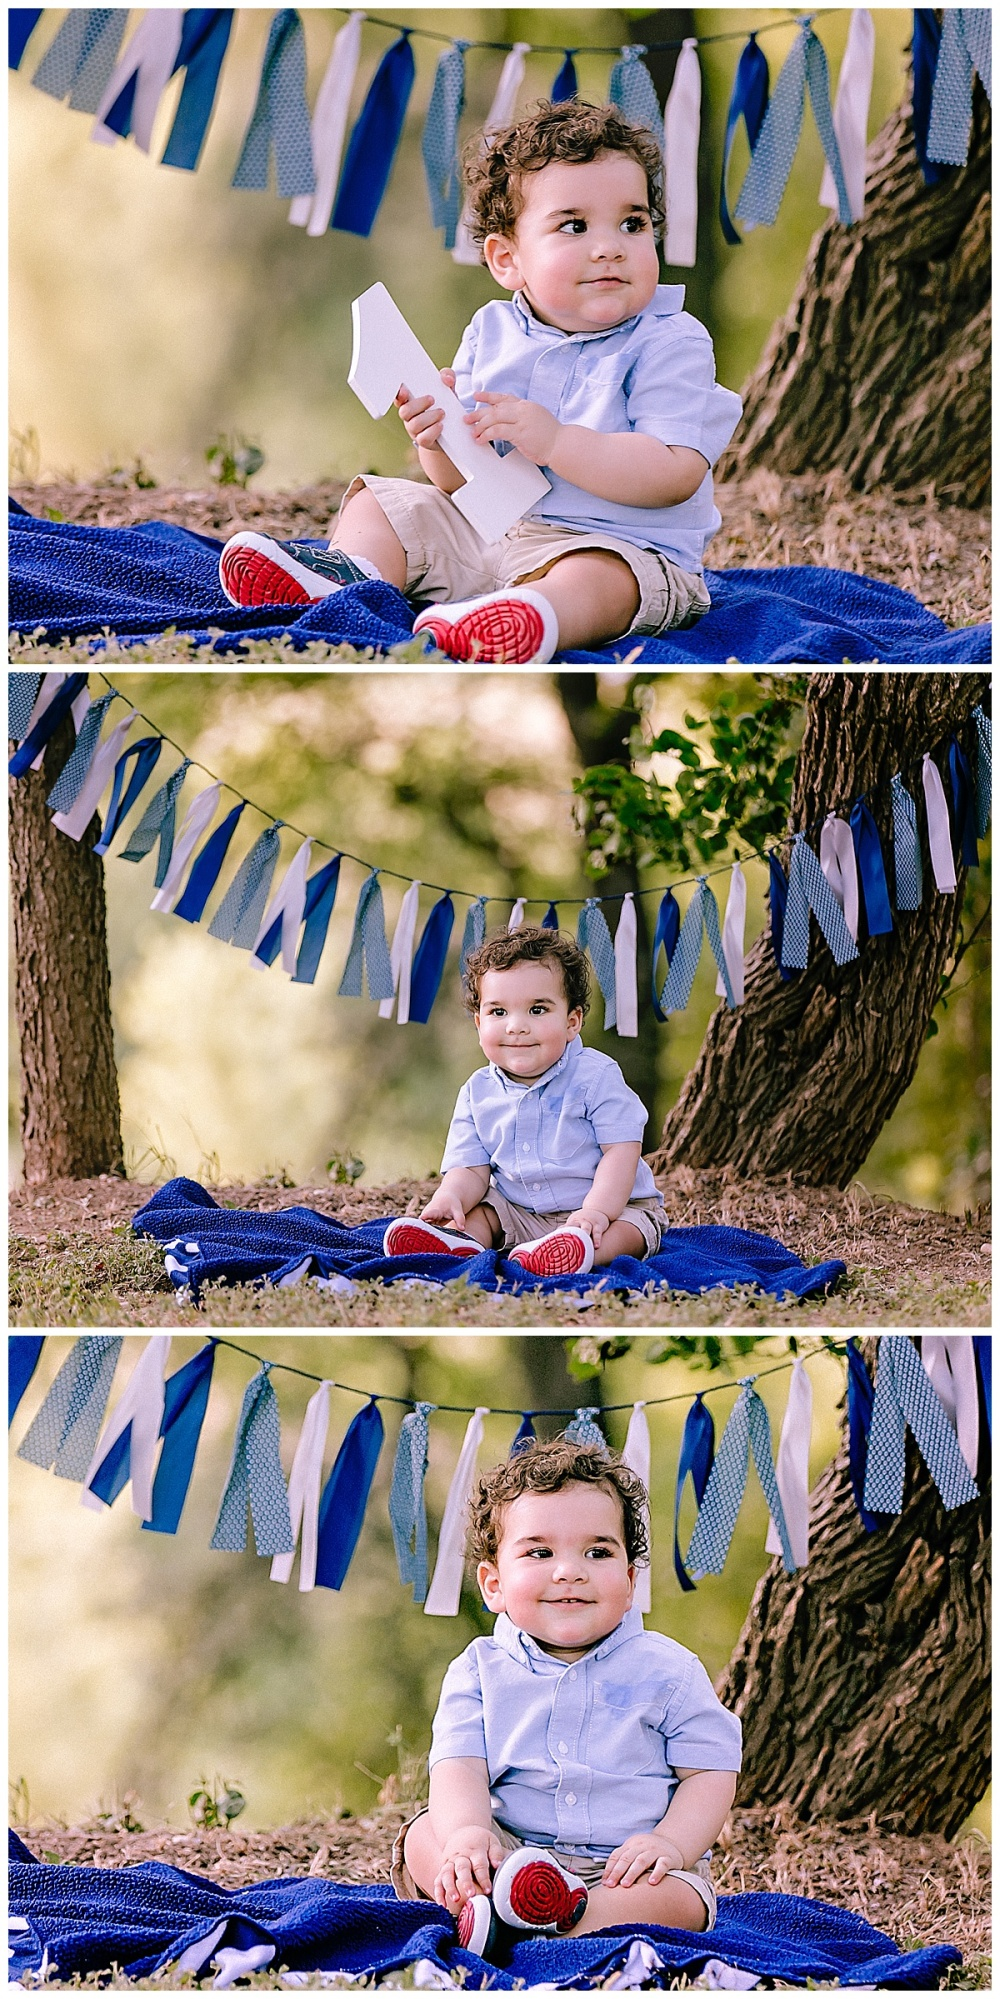 Carly-Barton-Photography-Birthday-Session-Schertz-Texas-Veterans-Park-1-year-family-photos-James_0004.jpg